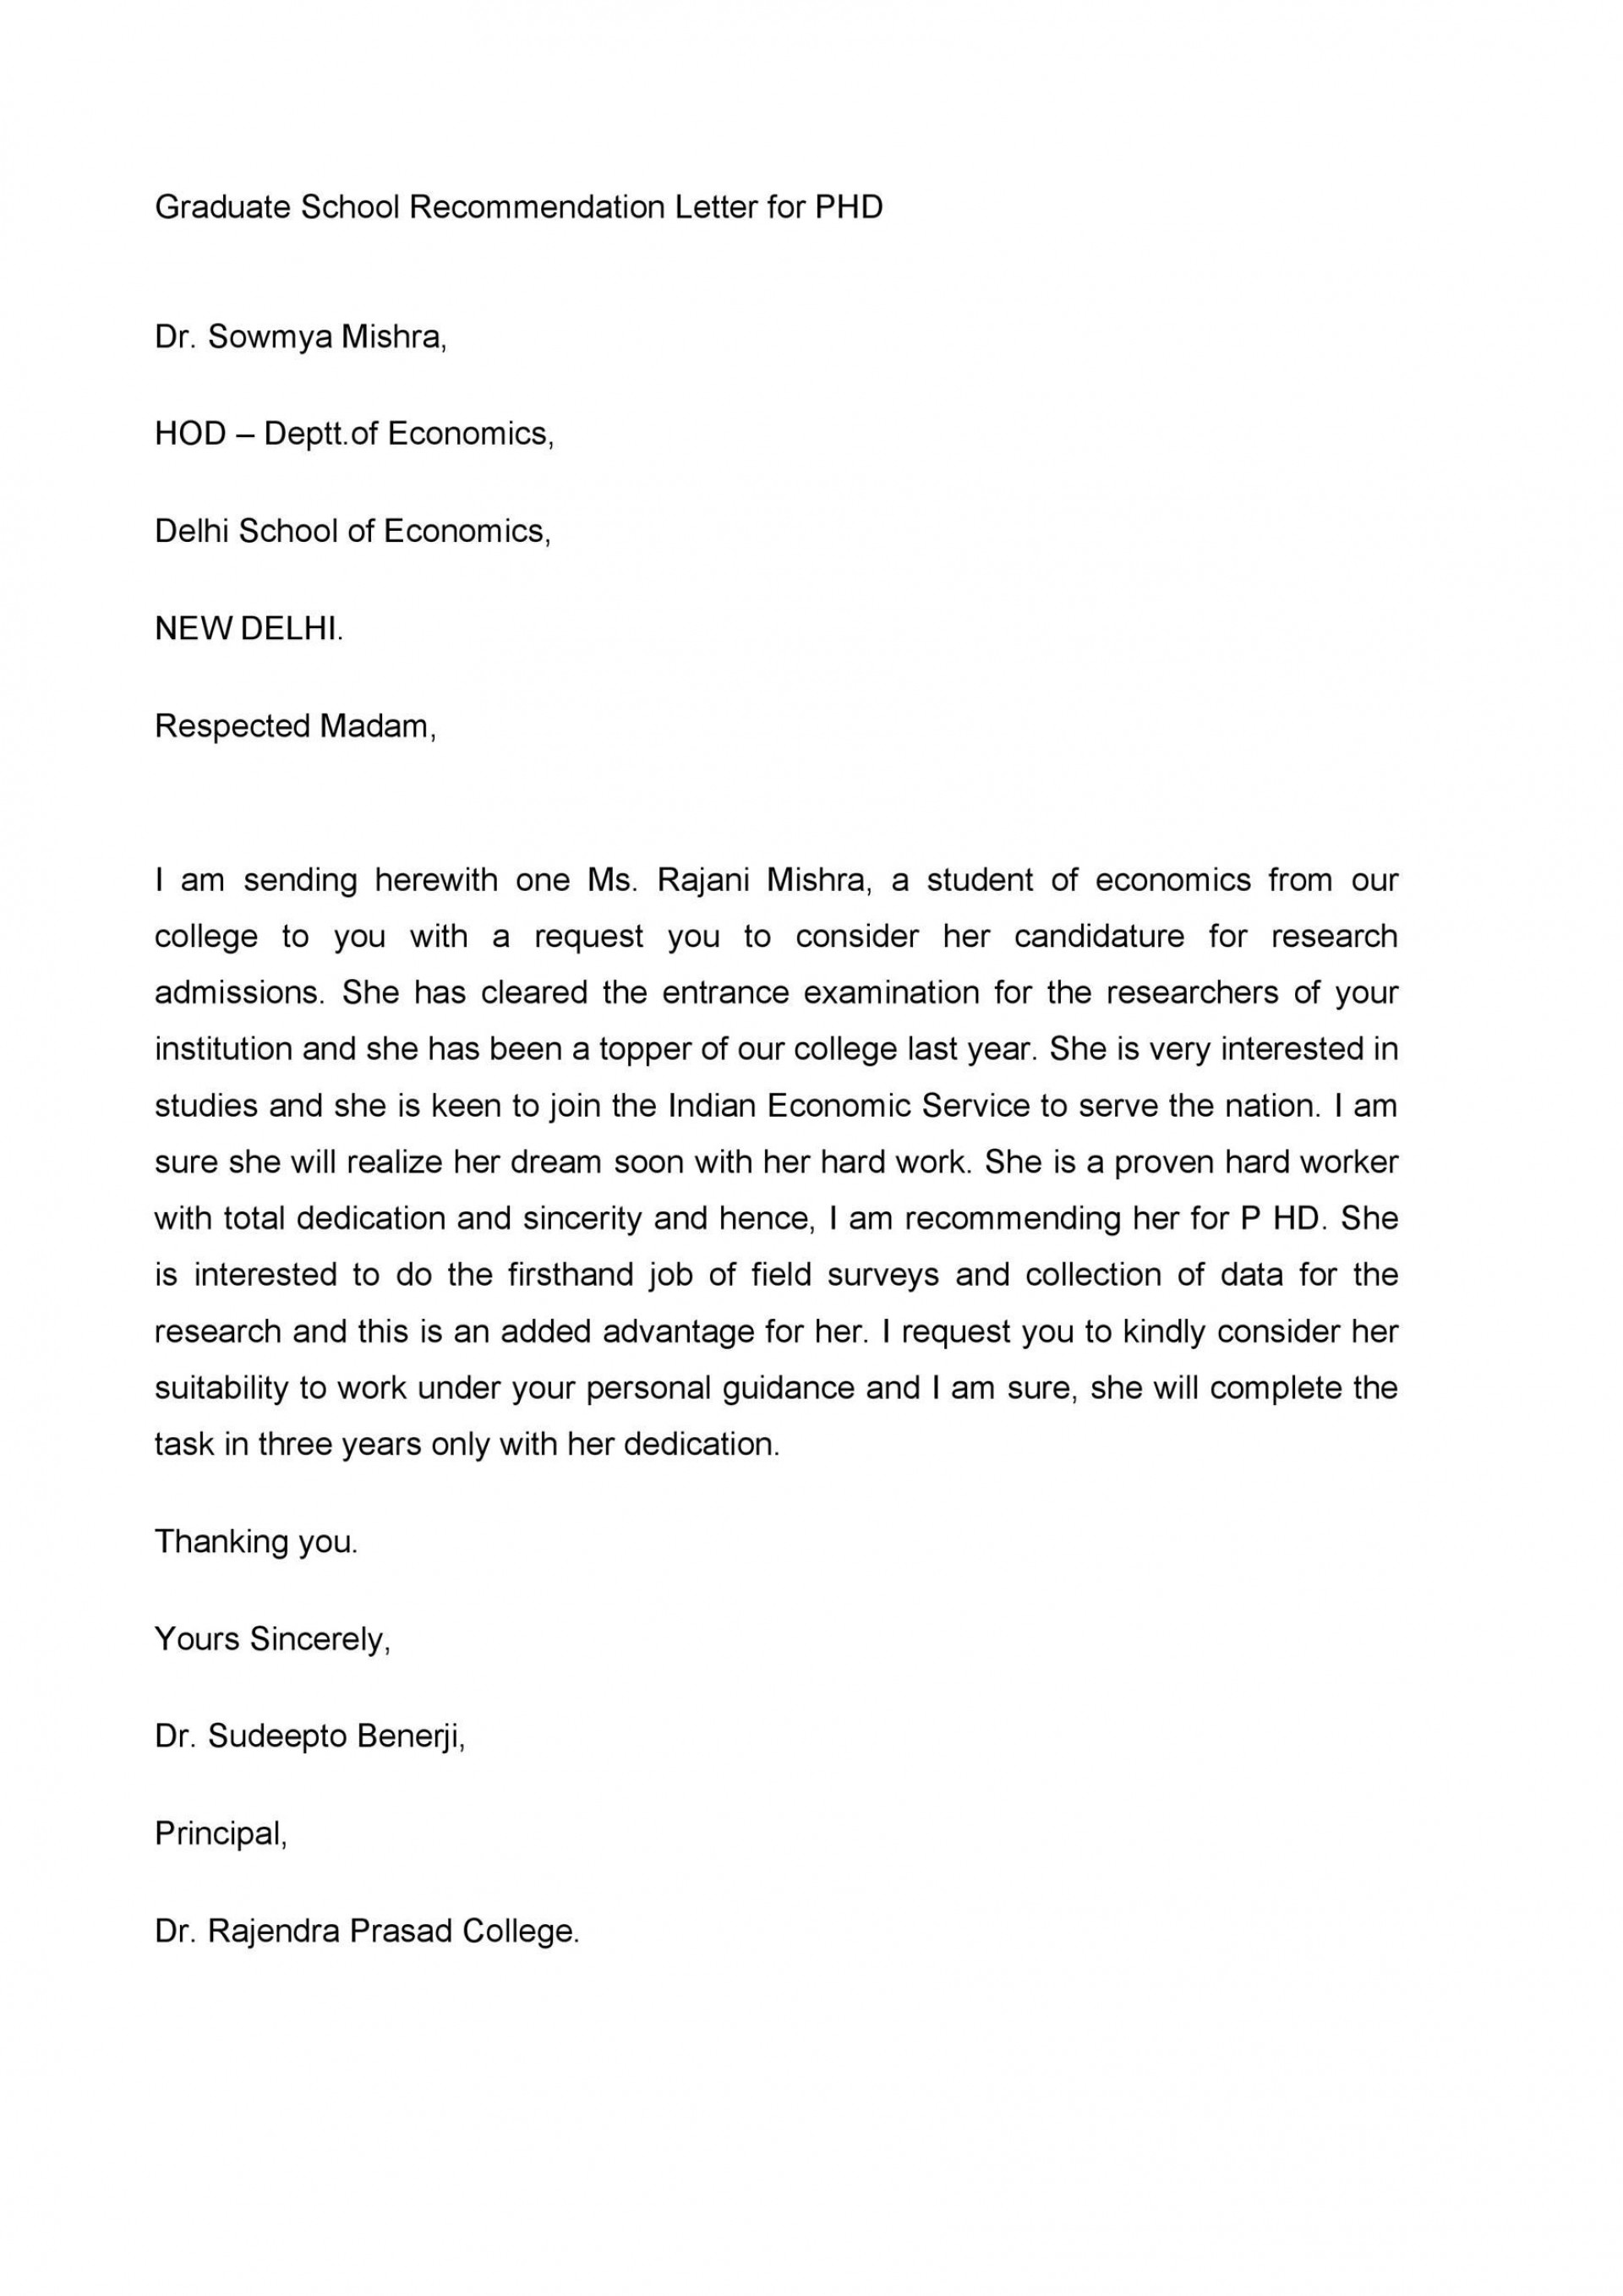 007 Stunning Letter Of Recommendation Template For College Student Photo  Sample From Professor1920